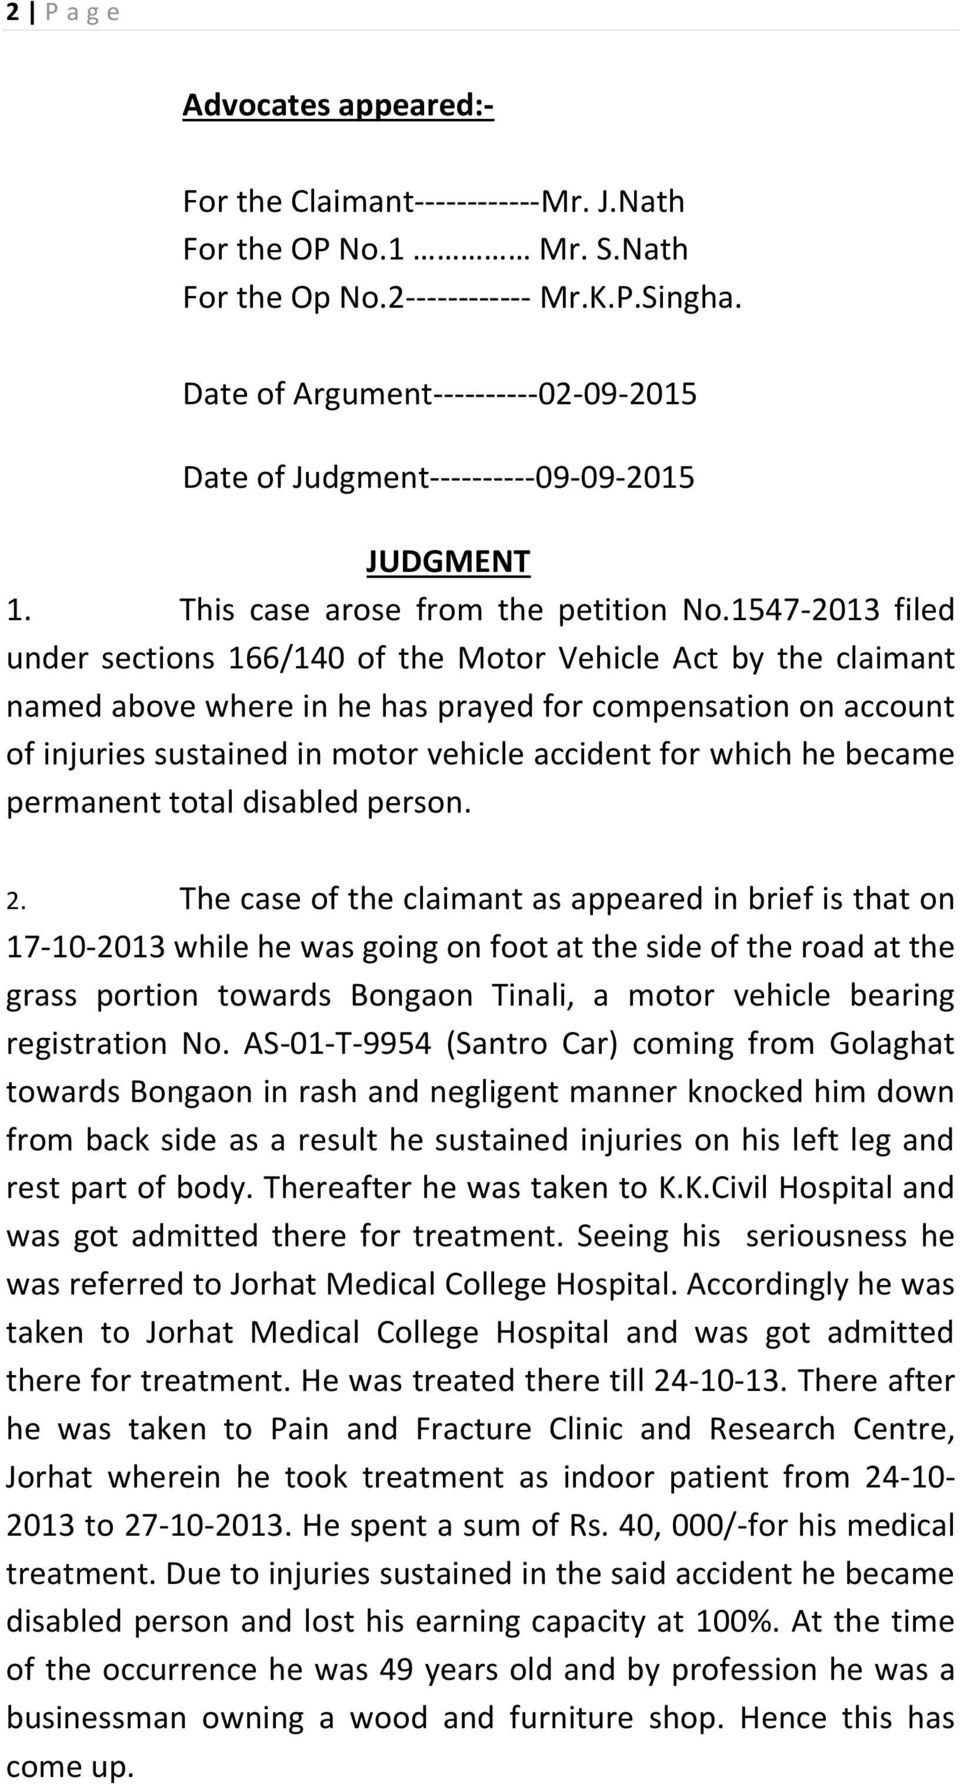 1547-2013 filed under sections 166/140 of the Motor Vehicle Act by the claimant named above where in he has prayed for compensation on account of injuries sustained in motor vehicle accident for